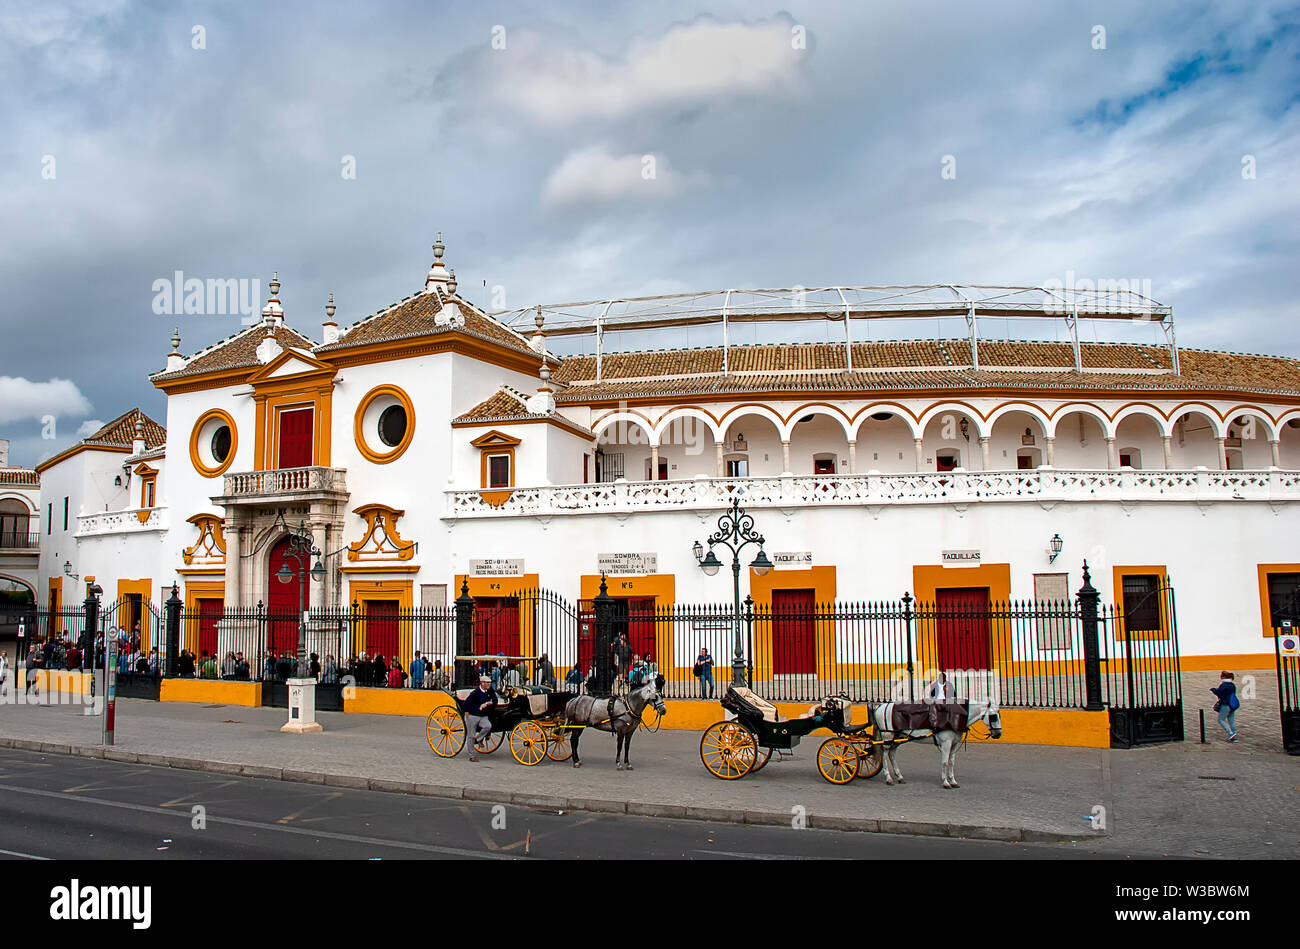 The bull ring in Seville, Spain (Plaza de toros de la Real Maestranza de Caballería de Sevilla) - Stock Image